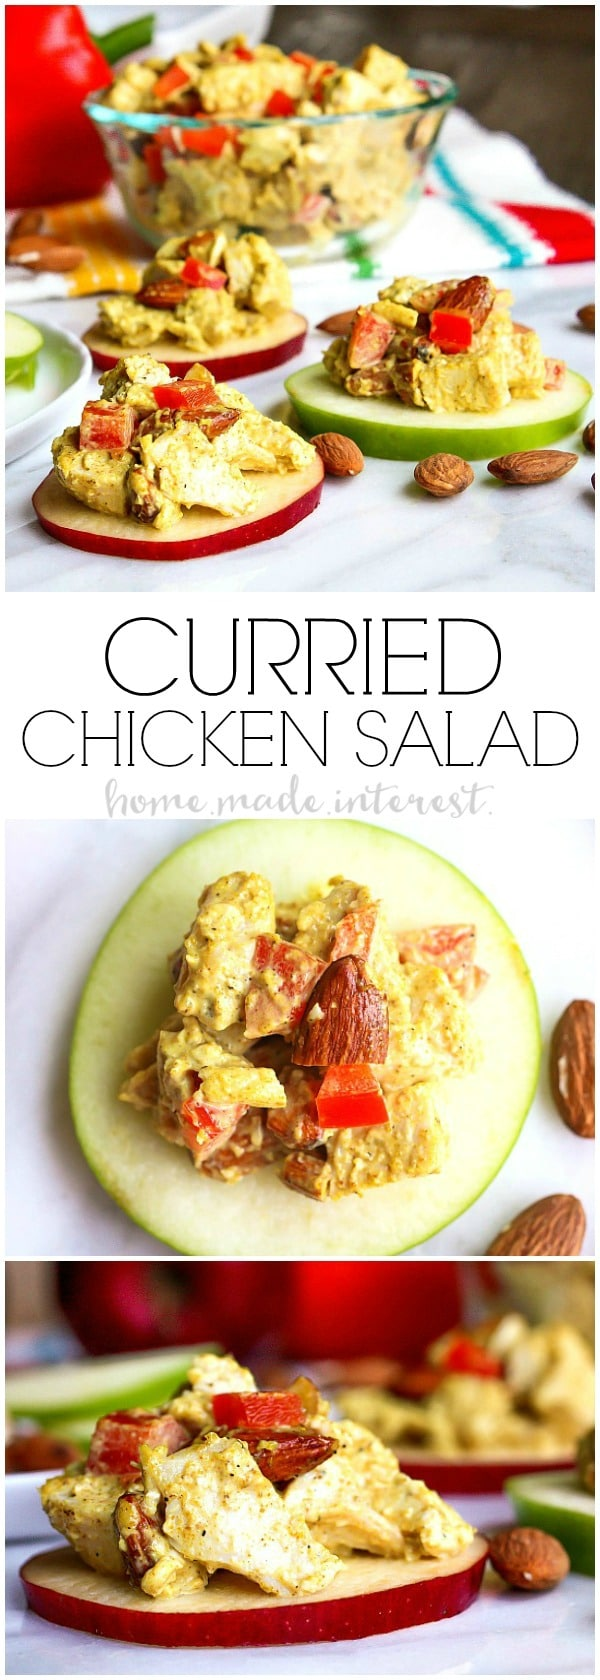 Curried Chicken Salad | This quick and easy curried chicken salad is full of flavor. We've got a recipe for your own simple curry, a mix of fragrant spices that liven up any dish and the almonds added to the chicken salad give it a little extra crunch. This is a great low carb lunch, low carb dinner, or low carb snack recipe. Give boring old chicken salad a little something extra with this healthy chicken salad recipe.